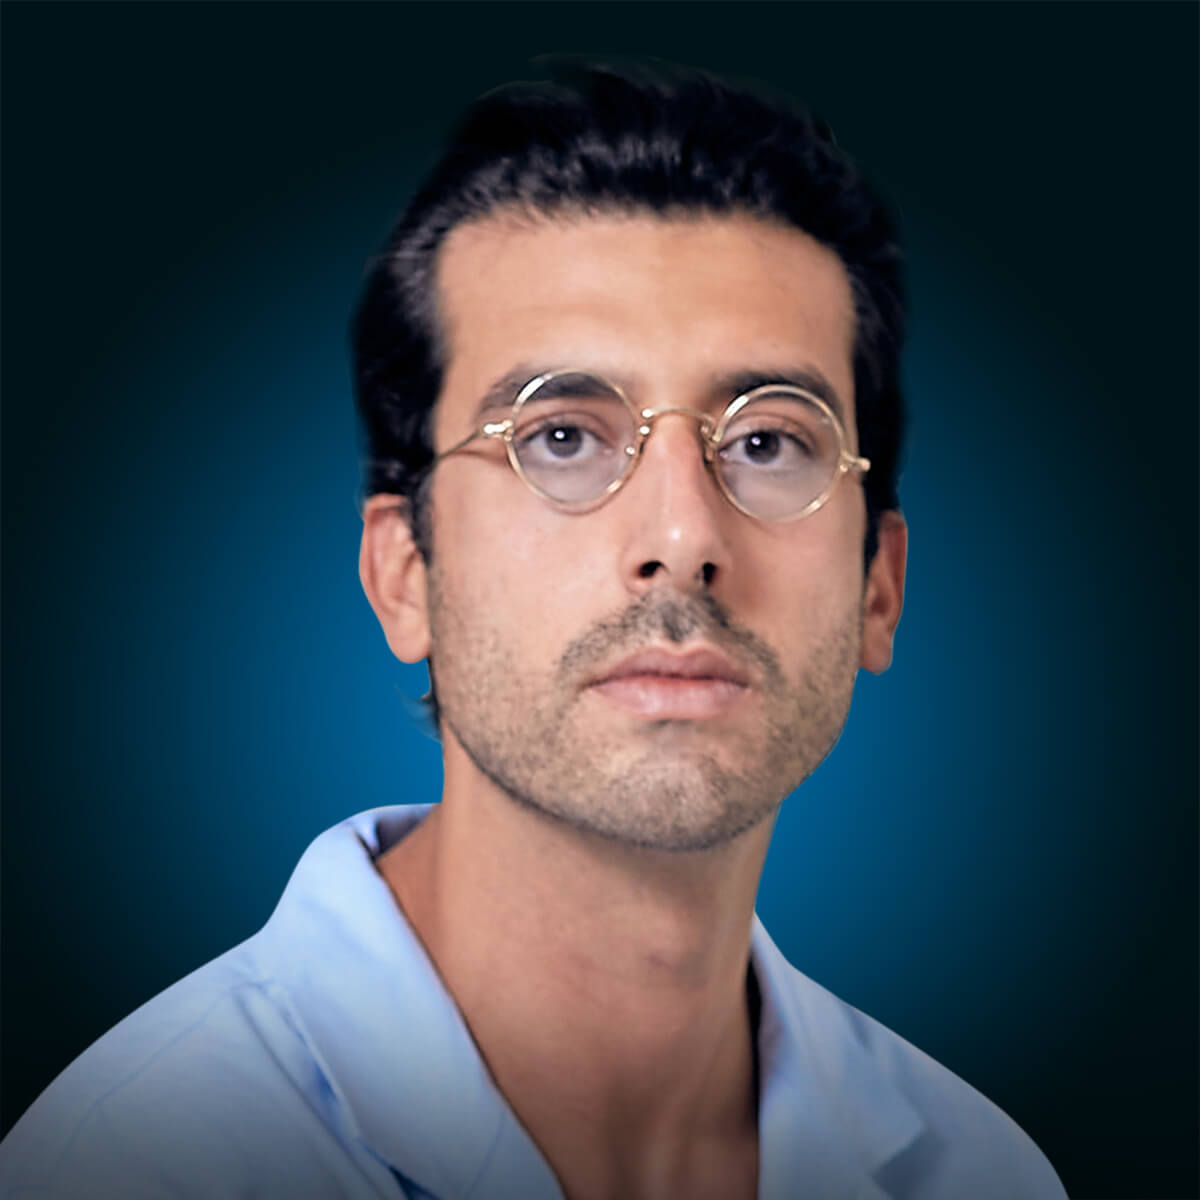 Aboudy Farkh is the founder of Blue Terra, a KSA- and UAE-based marketplace that specializes in conscious and sustainable products from local and international brands.